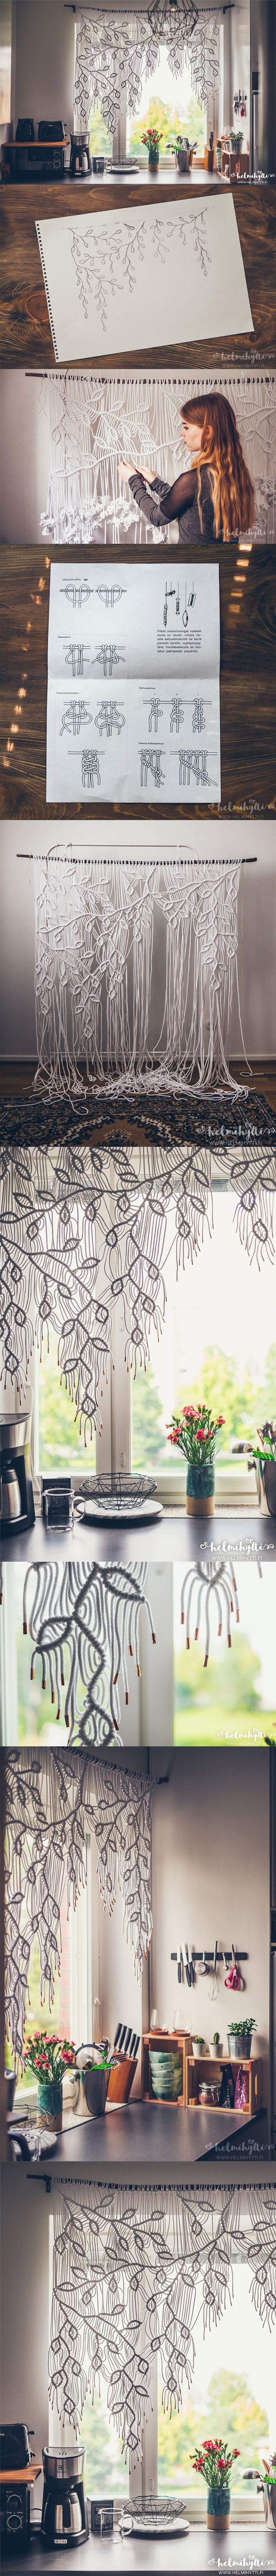 DIY macrame curtain with asymmetric pattern tutorial. Only one knot type used! Copper tape at the ends of the yarn. Original blog post & instructions: http://www.helmihytti.fi/2017/10/diy-macrame-verhot.html Handmade Makrame Wall Hanging Project Easy knots Boho home decor Bohemian kitchen curtains